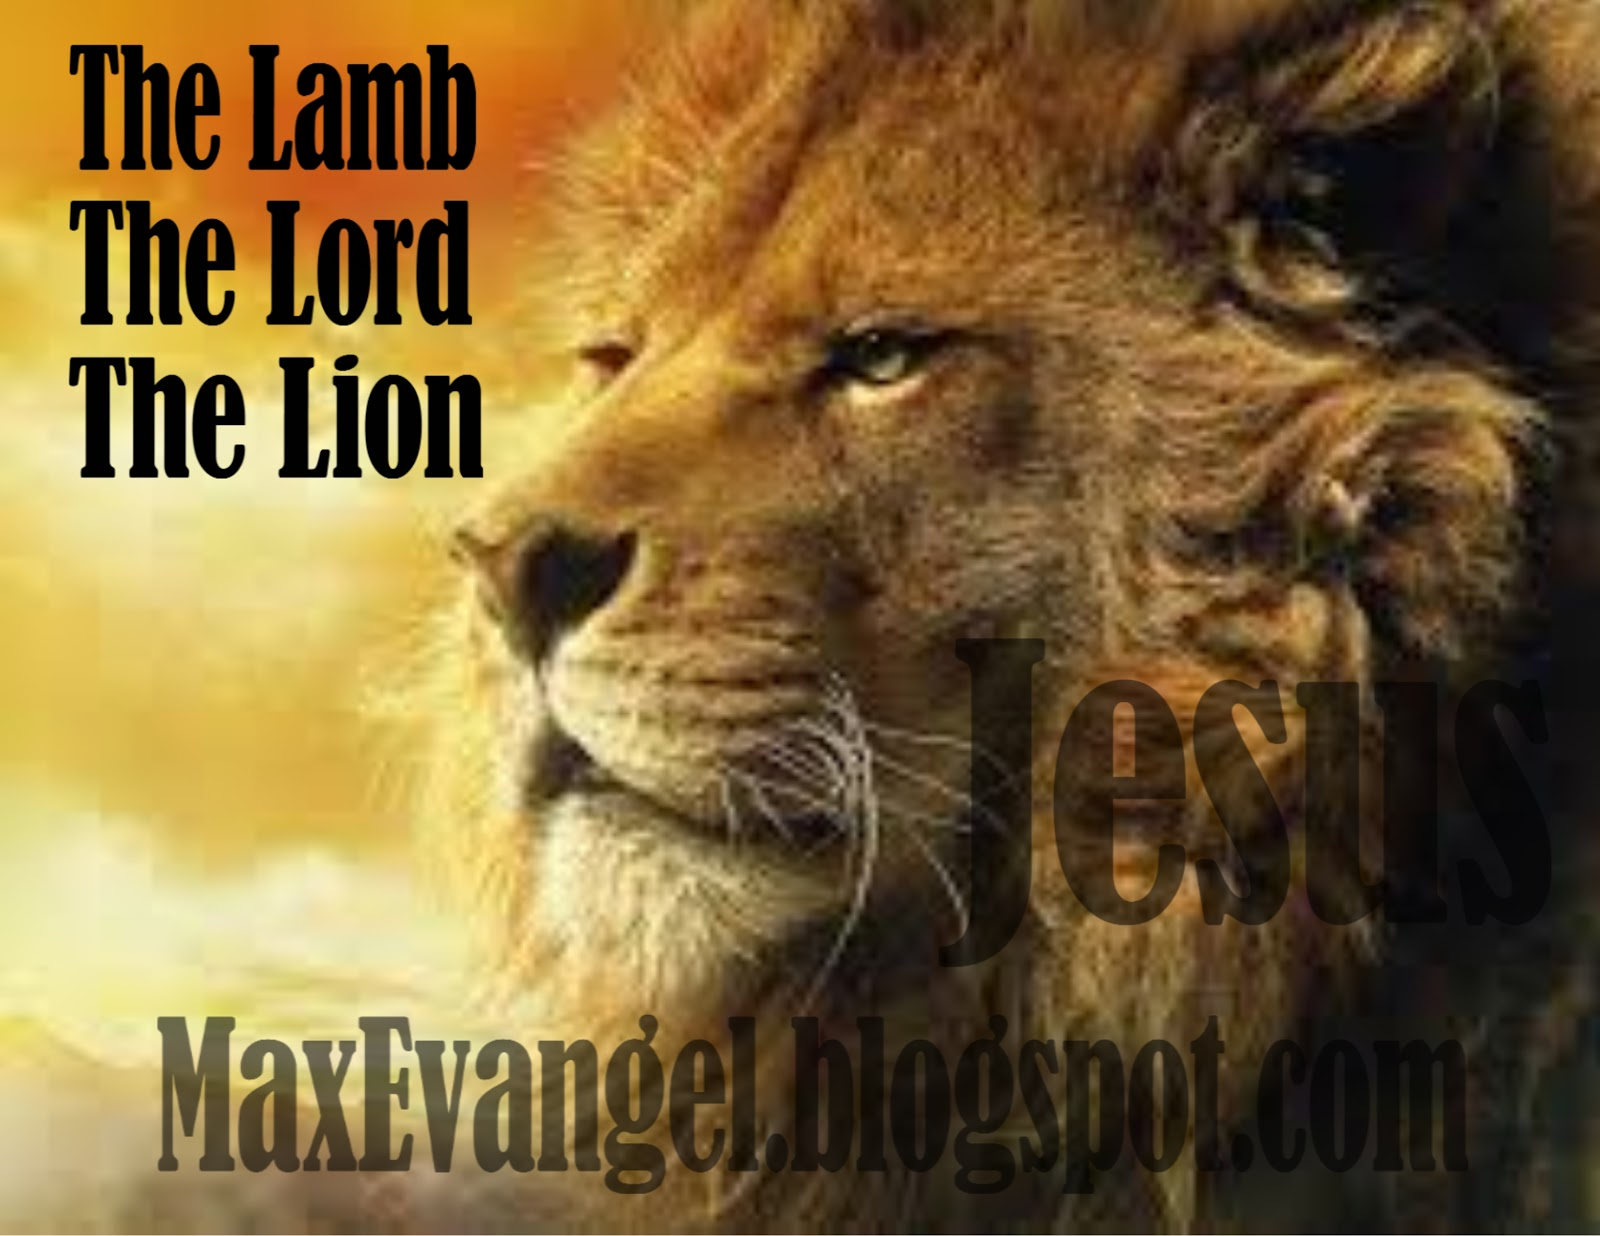 maxevangel jesus christ the lamb the lord the lion